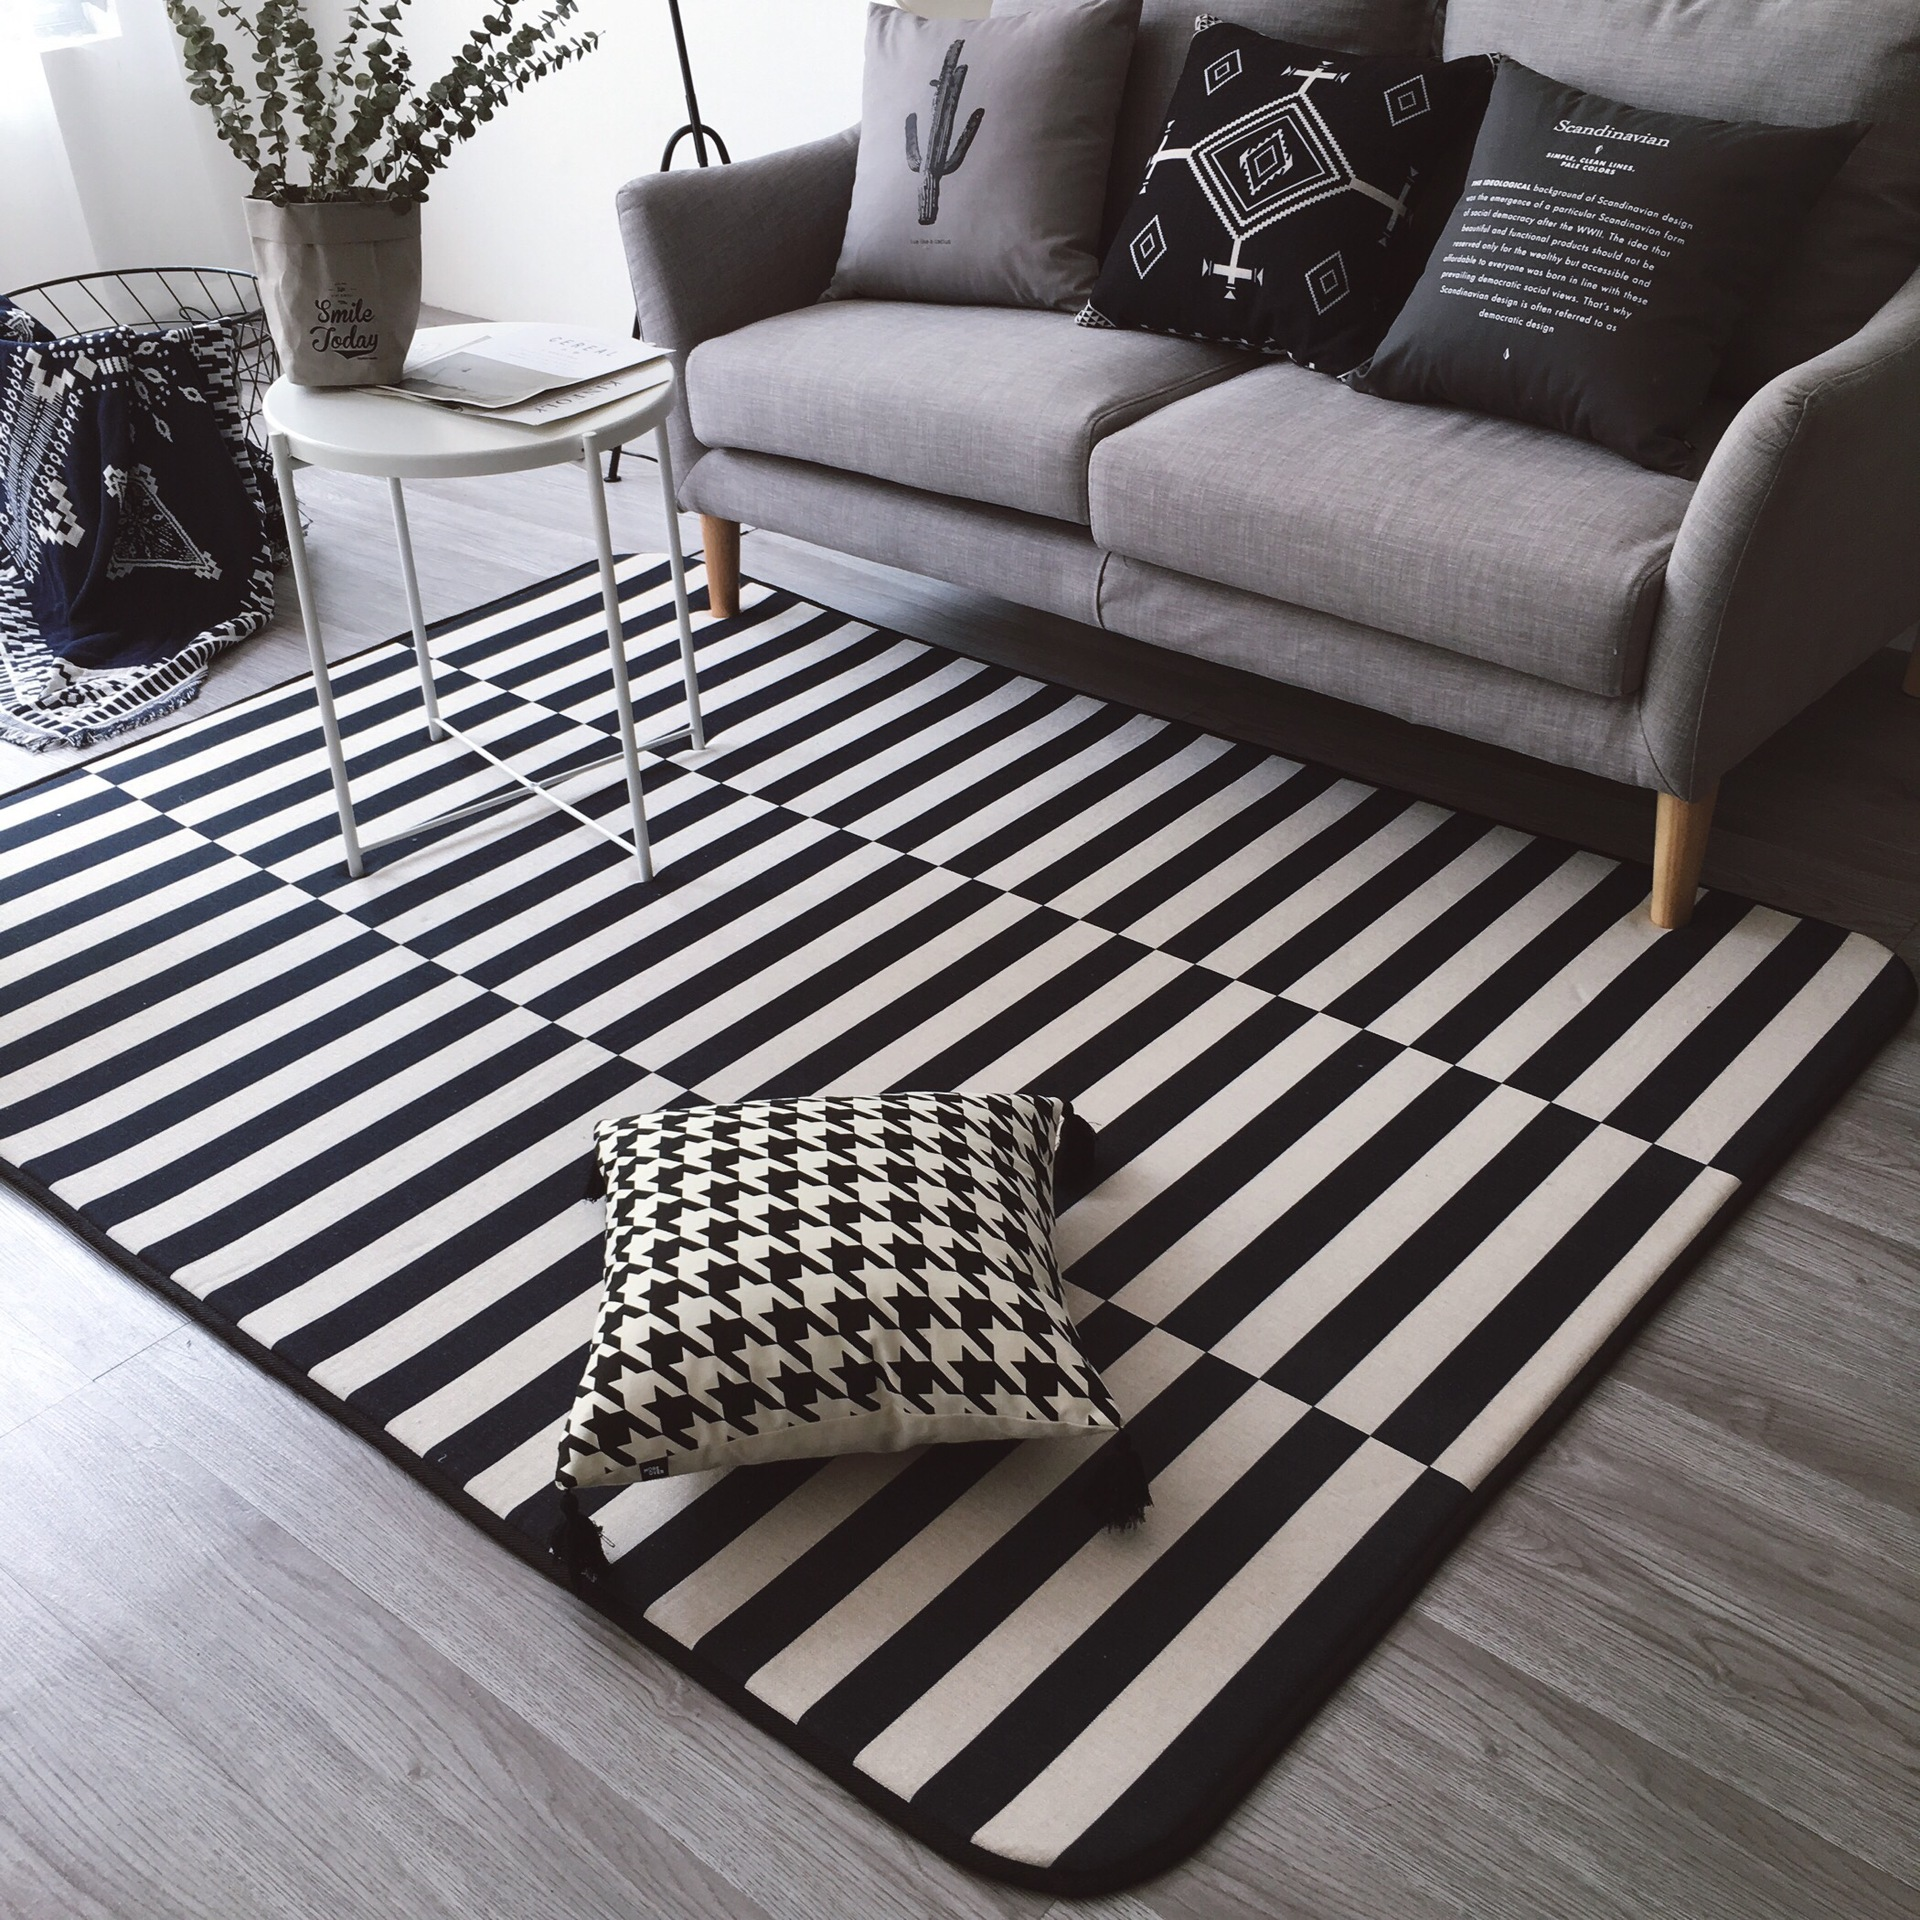 Outdoor Teppich Scandinavian Design Us 98 4 20 Off 145x195cm Black White Rugs And Carpets For Living Room Home Bedroom Area Rug Coffee Table Floor Mat Kids Play Carpet Striped In